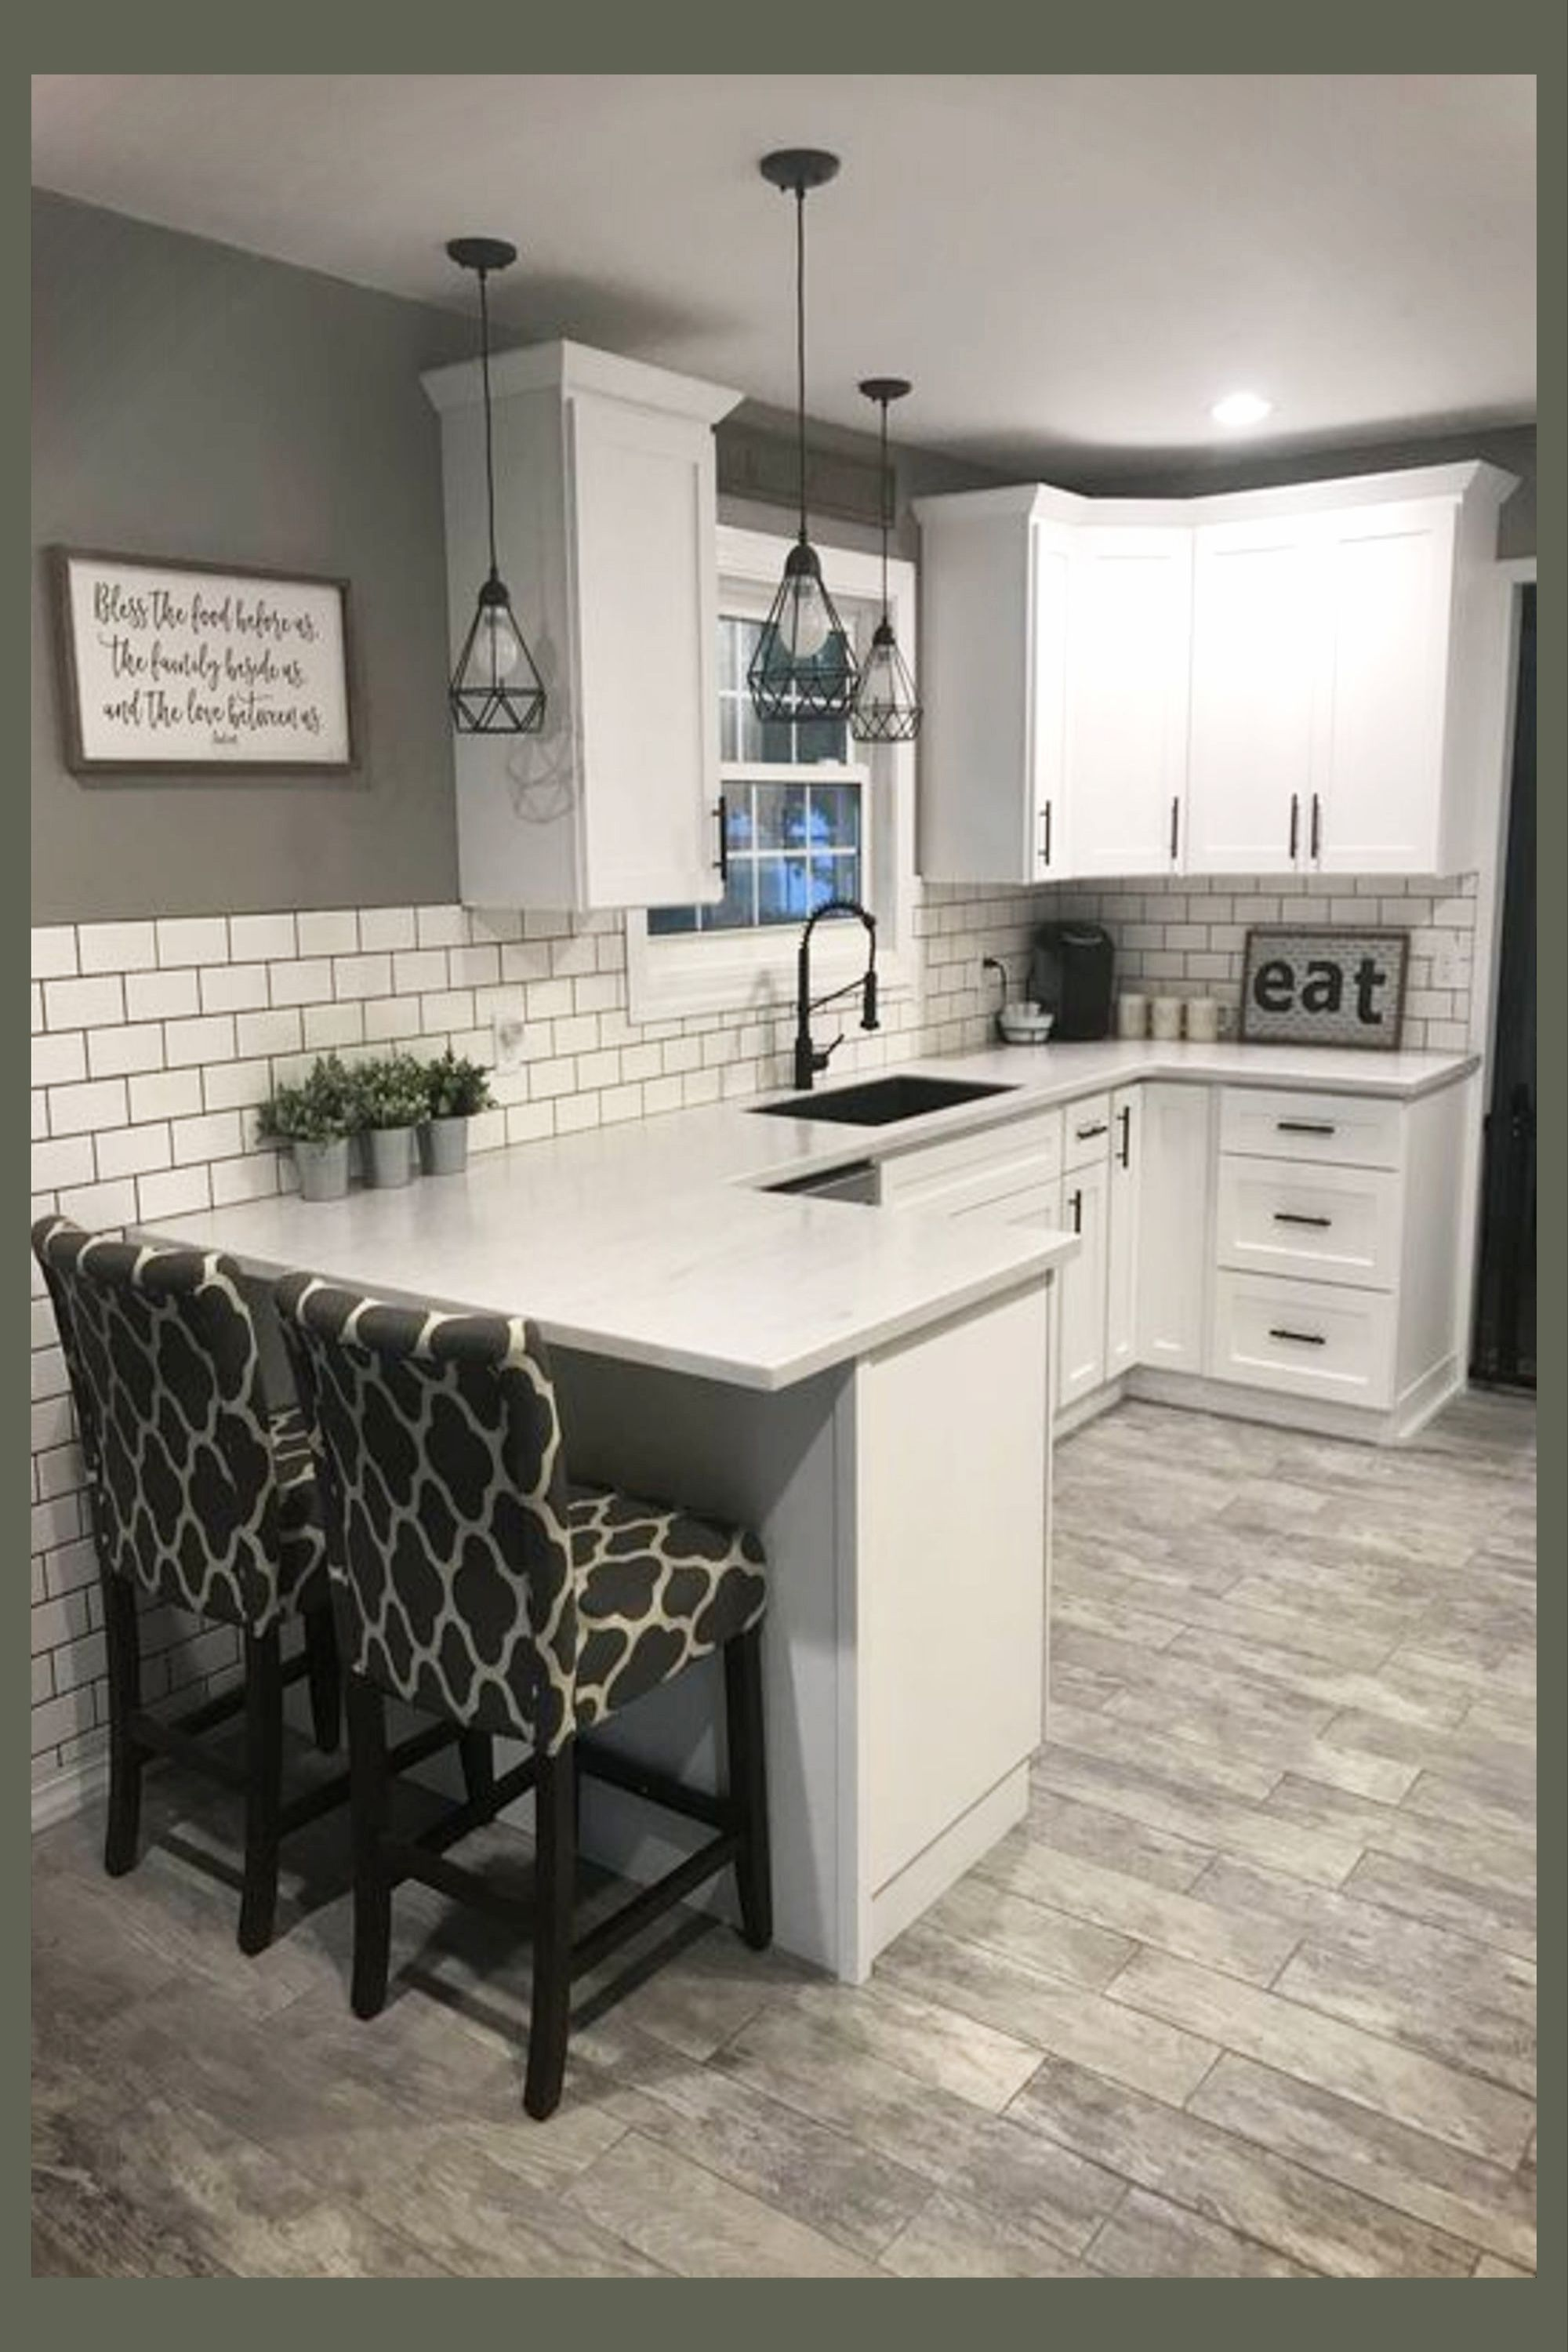 Farmhouse kitchen ideas & PICTURES of farmhouse kitchen on a Budget (NE